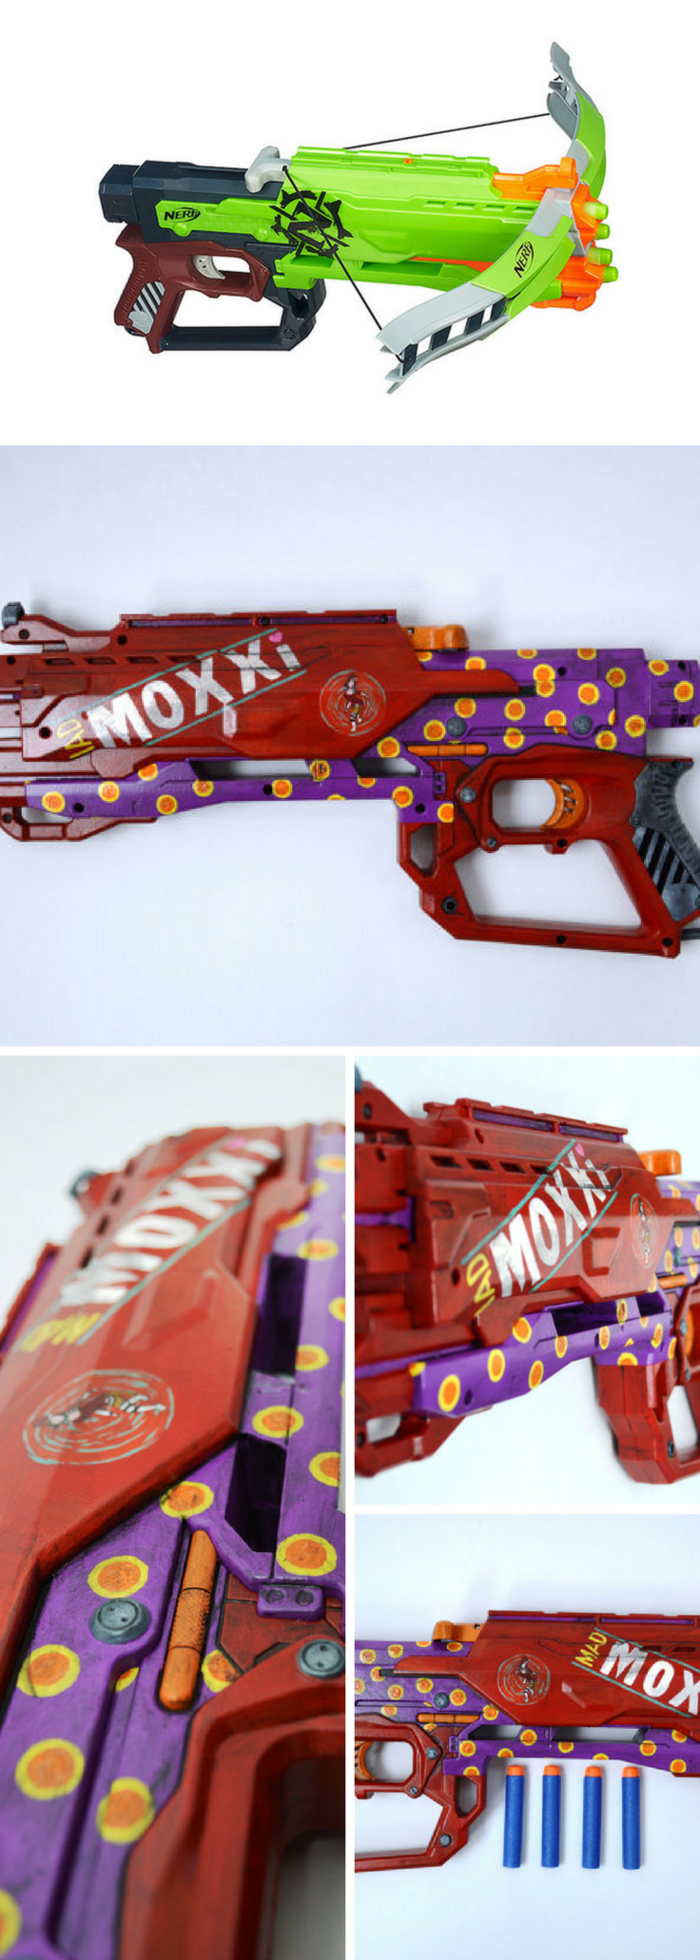 NERF Modulus Long Range Upgrade Kit  Hasbro  ToysRUs